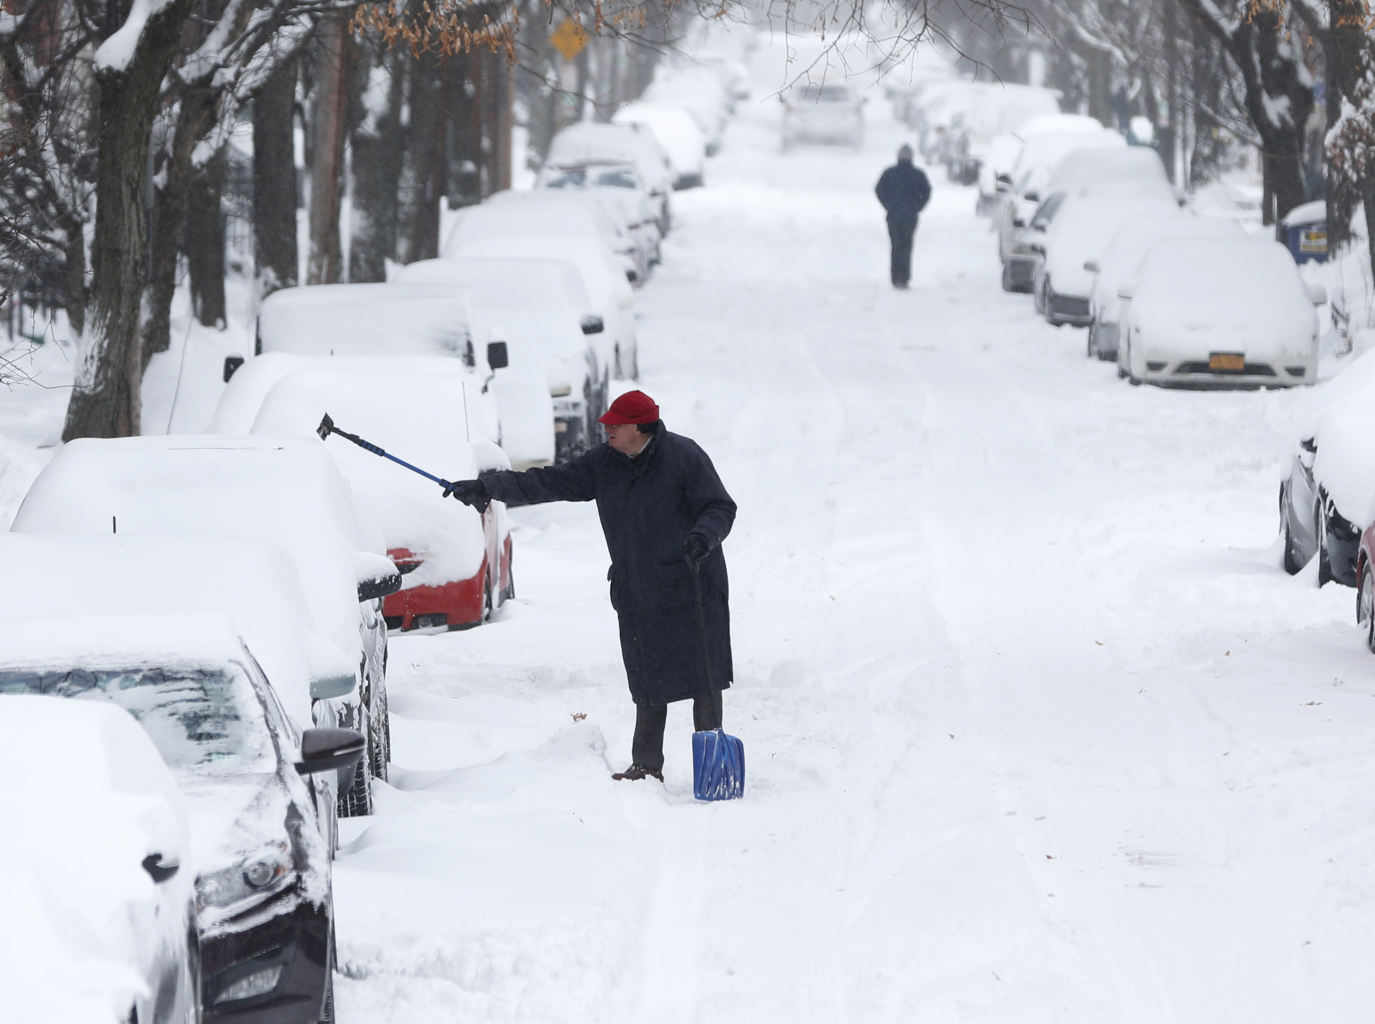 On friday, jan. 3, 2014, in albany, n.y. a winter storm slammed into